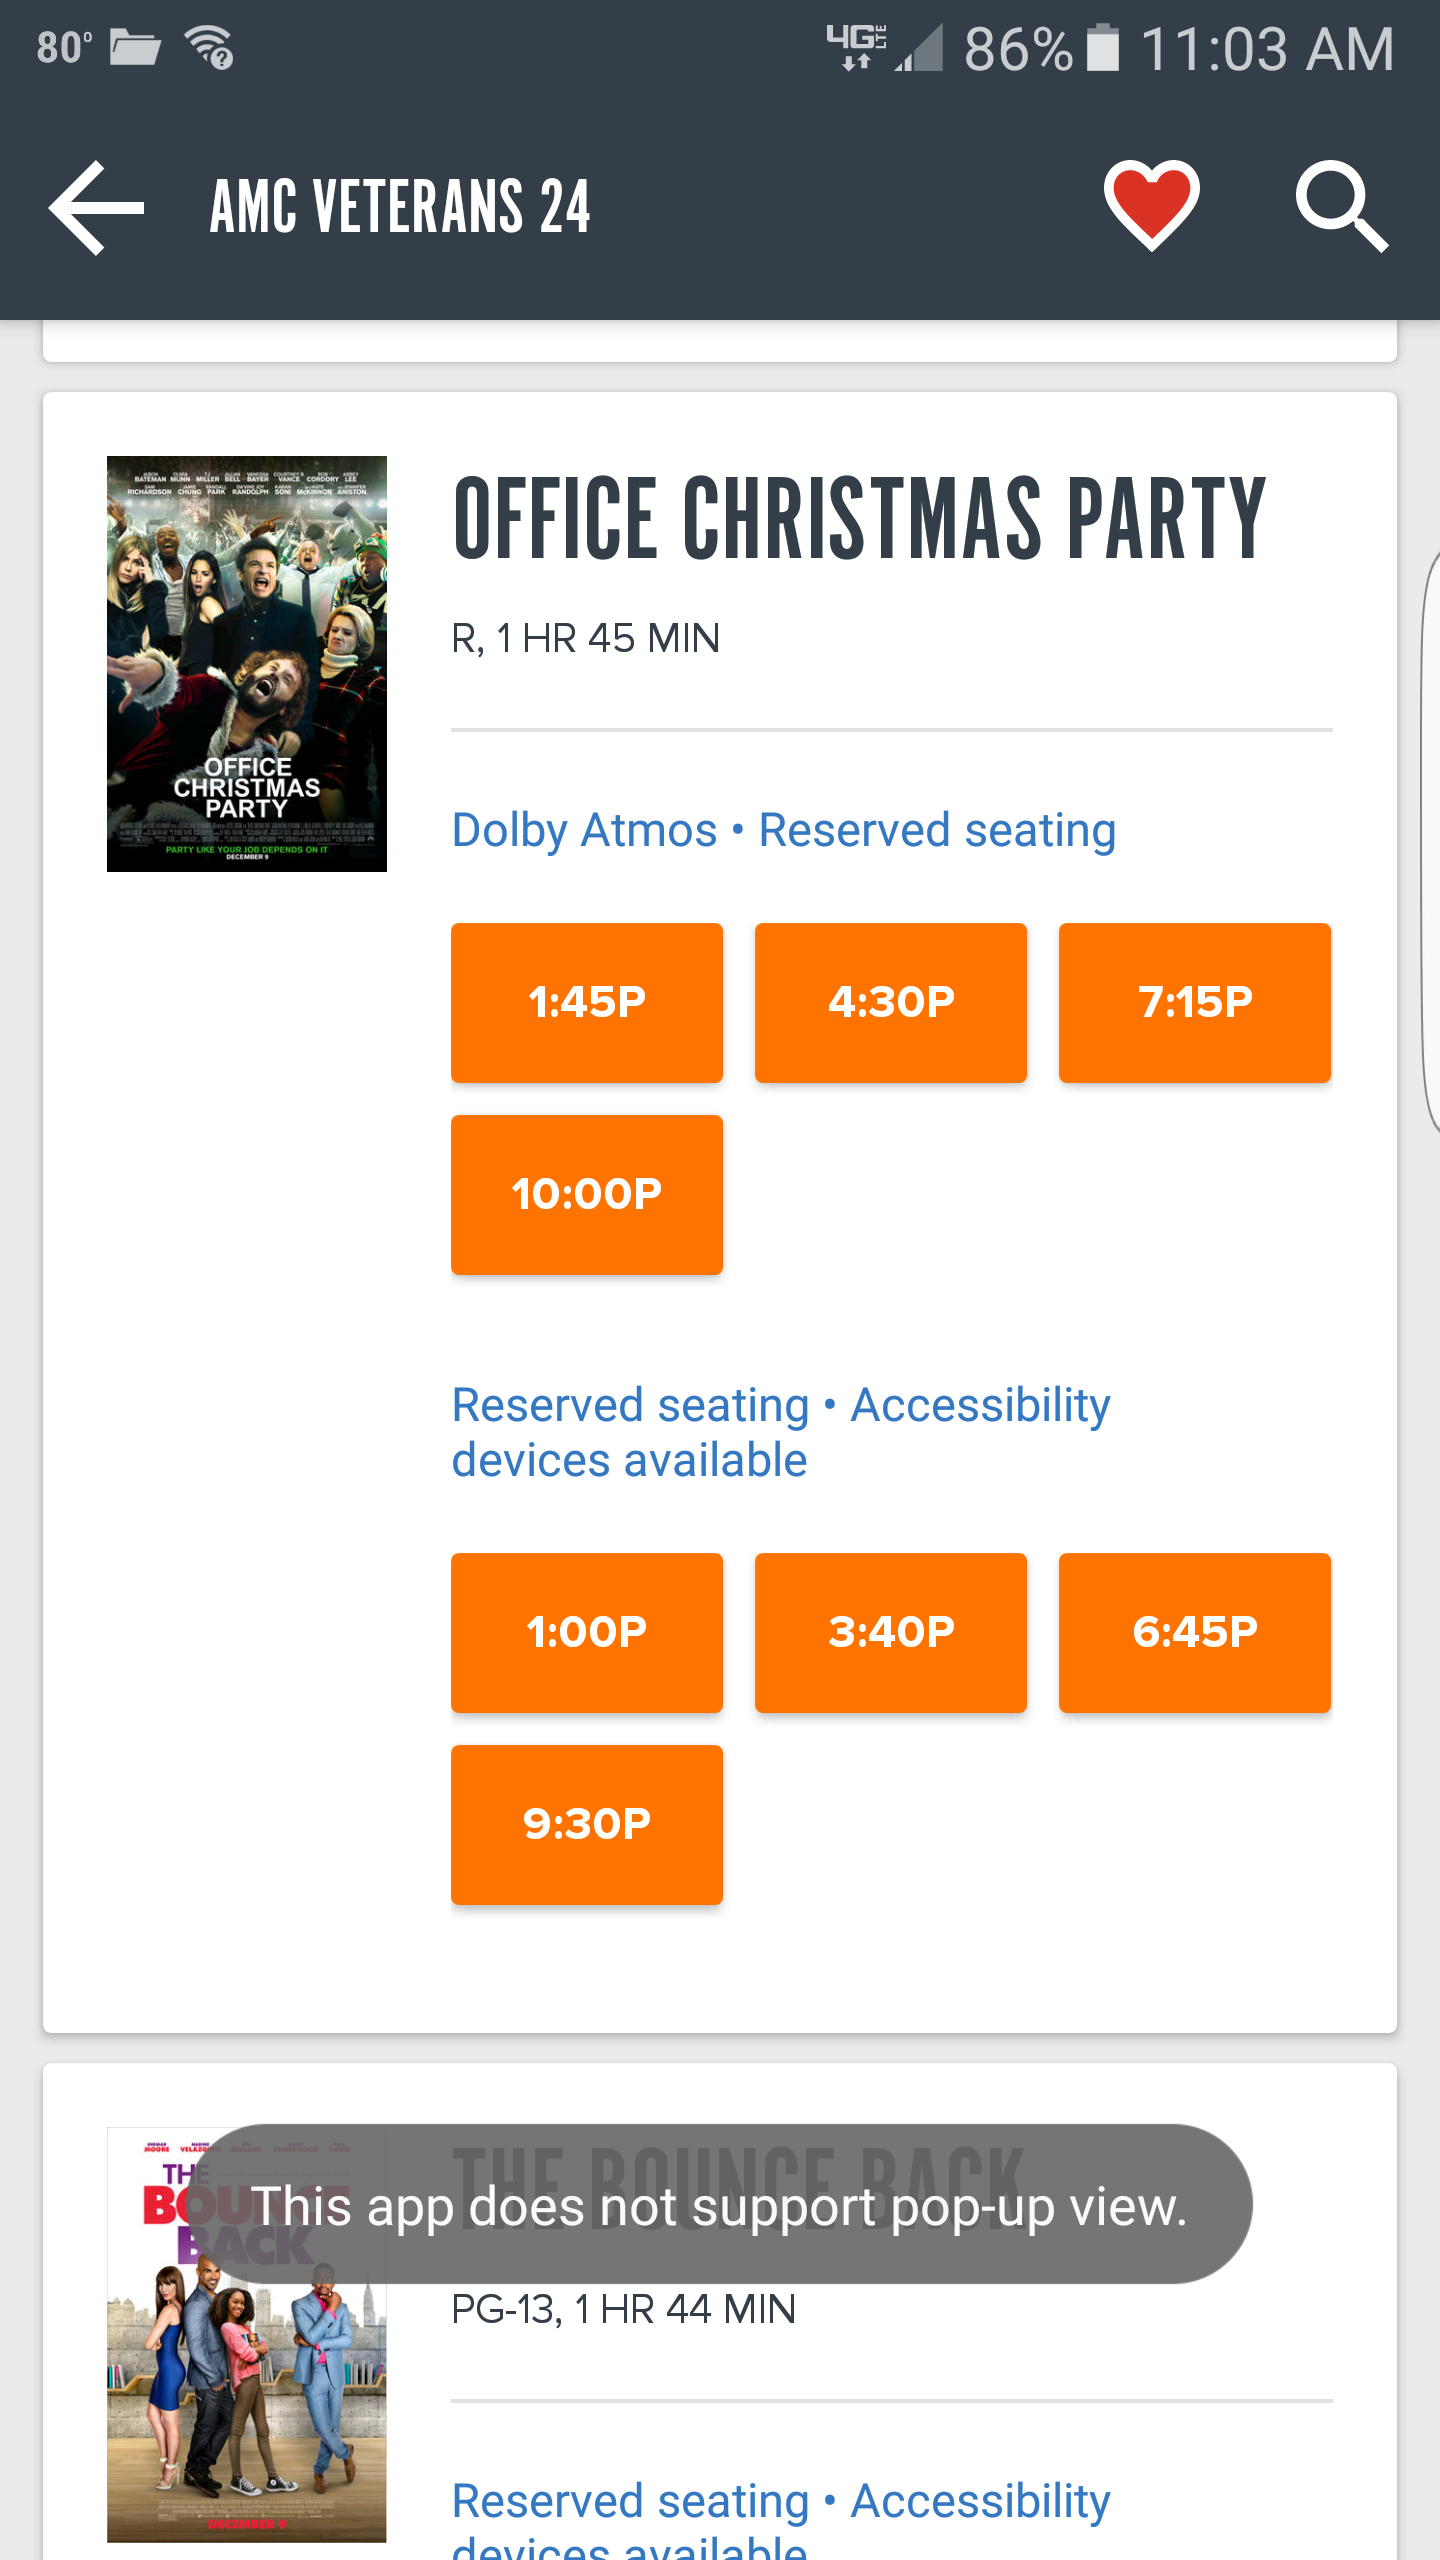 My local AMC theater put Office Christmas Party as the Dolby Cinema ...